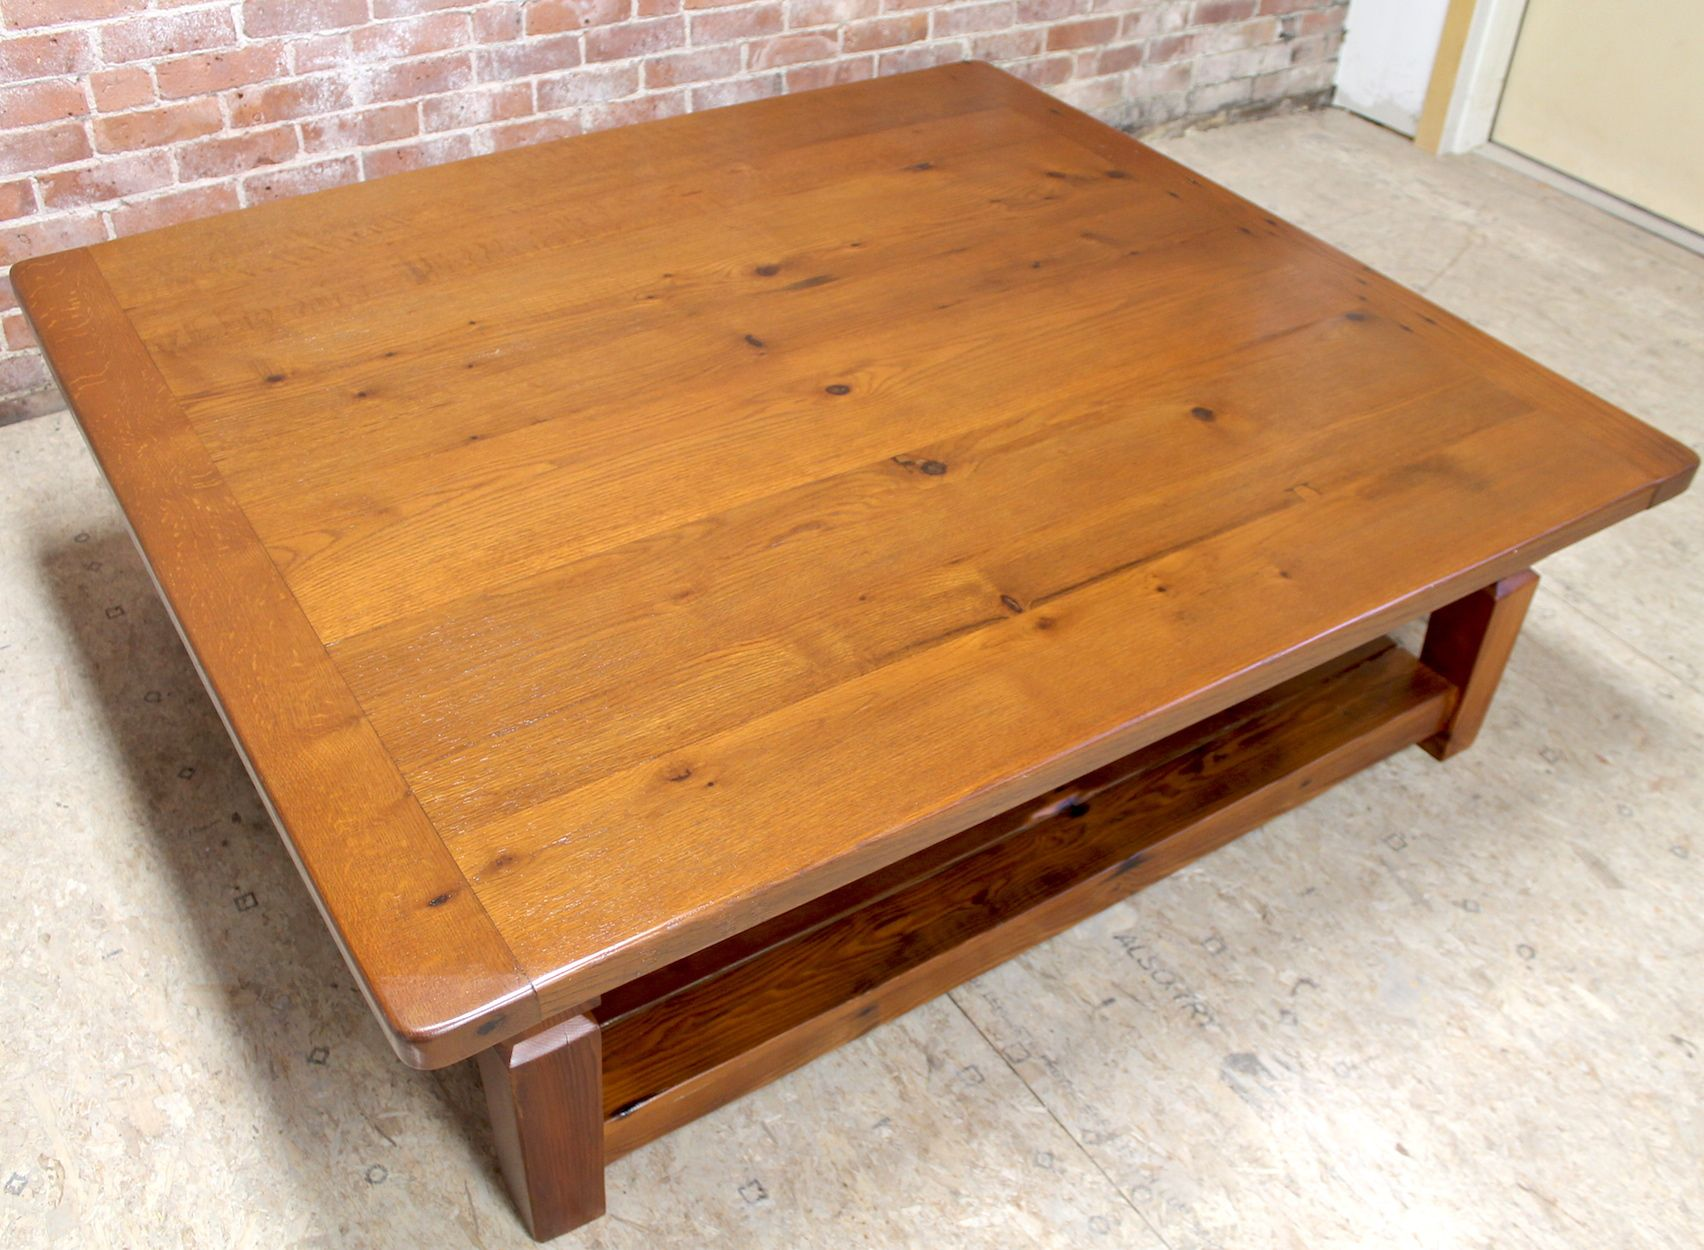 Rustic Coffee Table From Reclaimed Wood #Reclaimed #Oak By Ecustomfinishescom